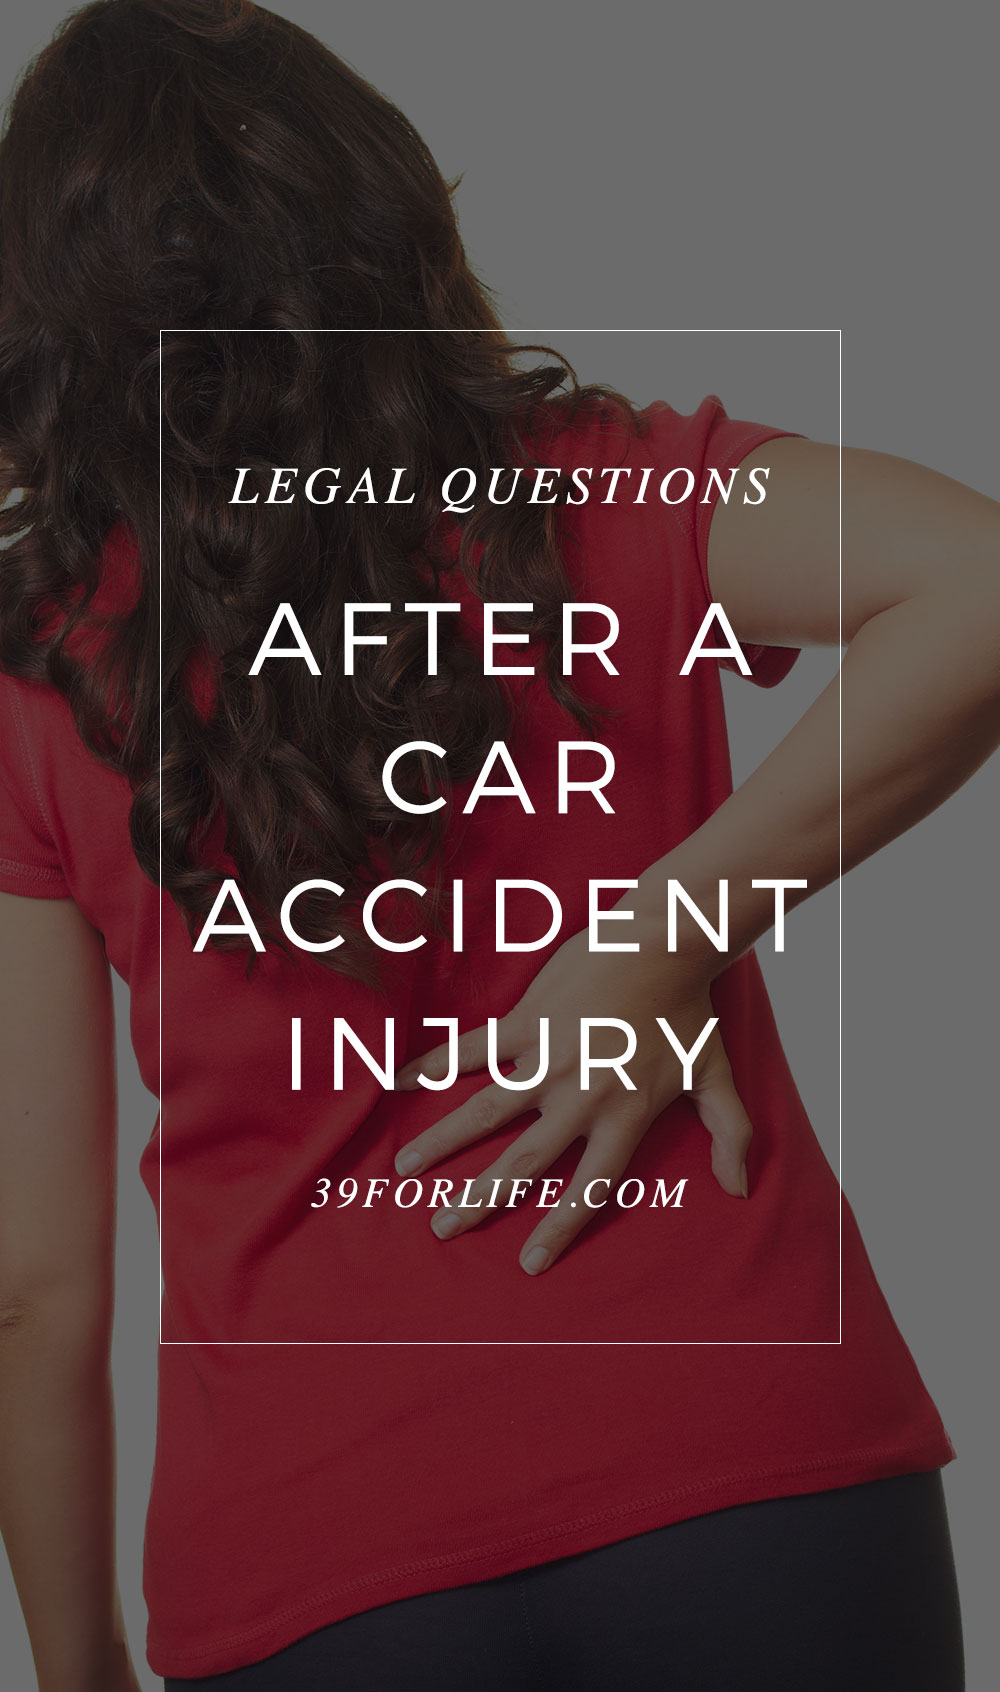 After a car accident, legal concerns add to the frustration and sometimes isolation that comes with chronic back pain. Here are your options.